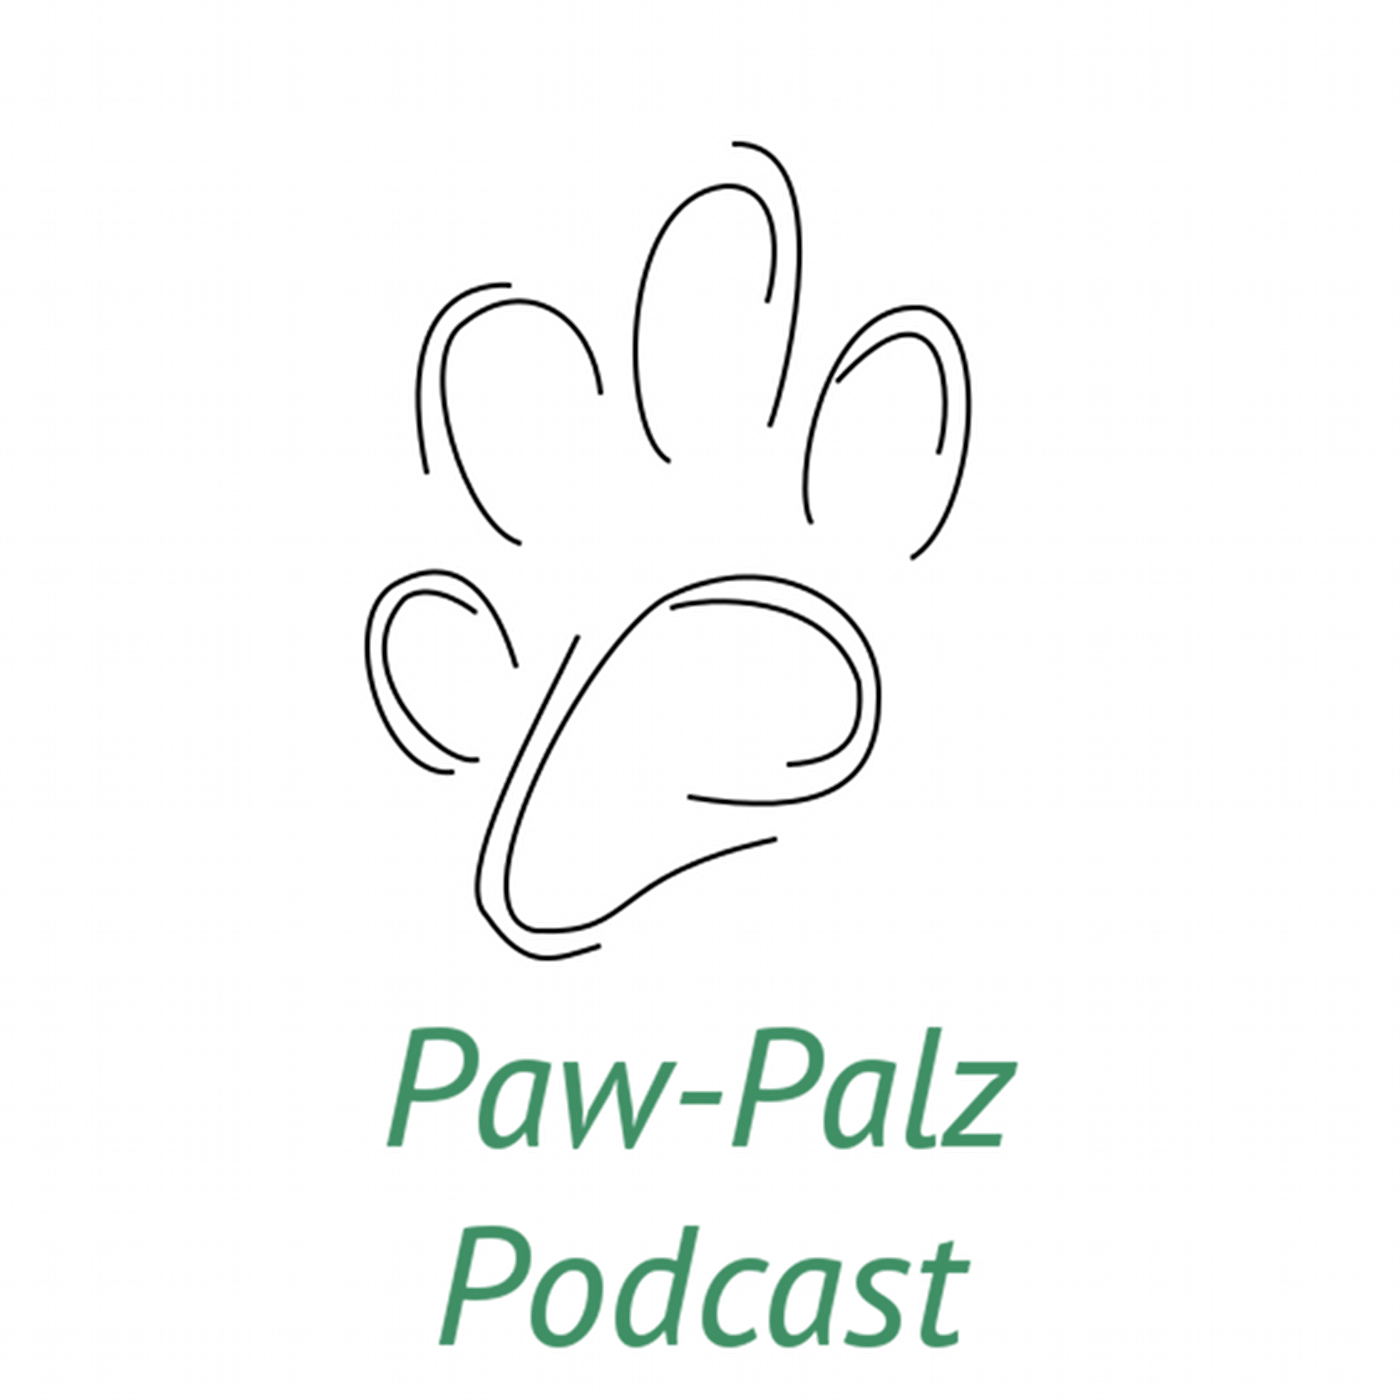 The Paw Palz Podcast Episode 9